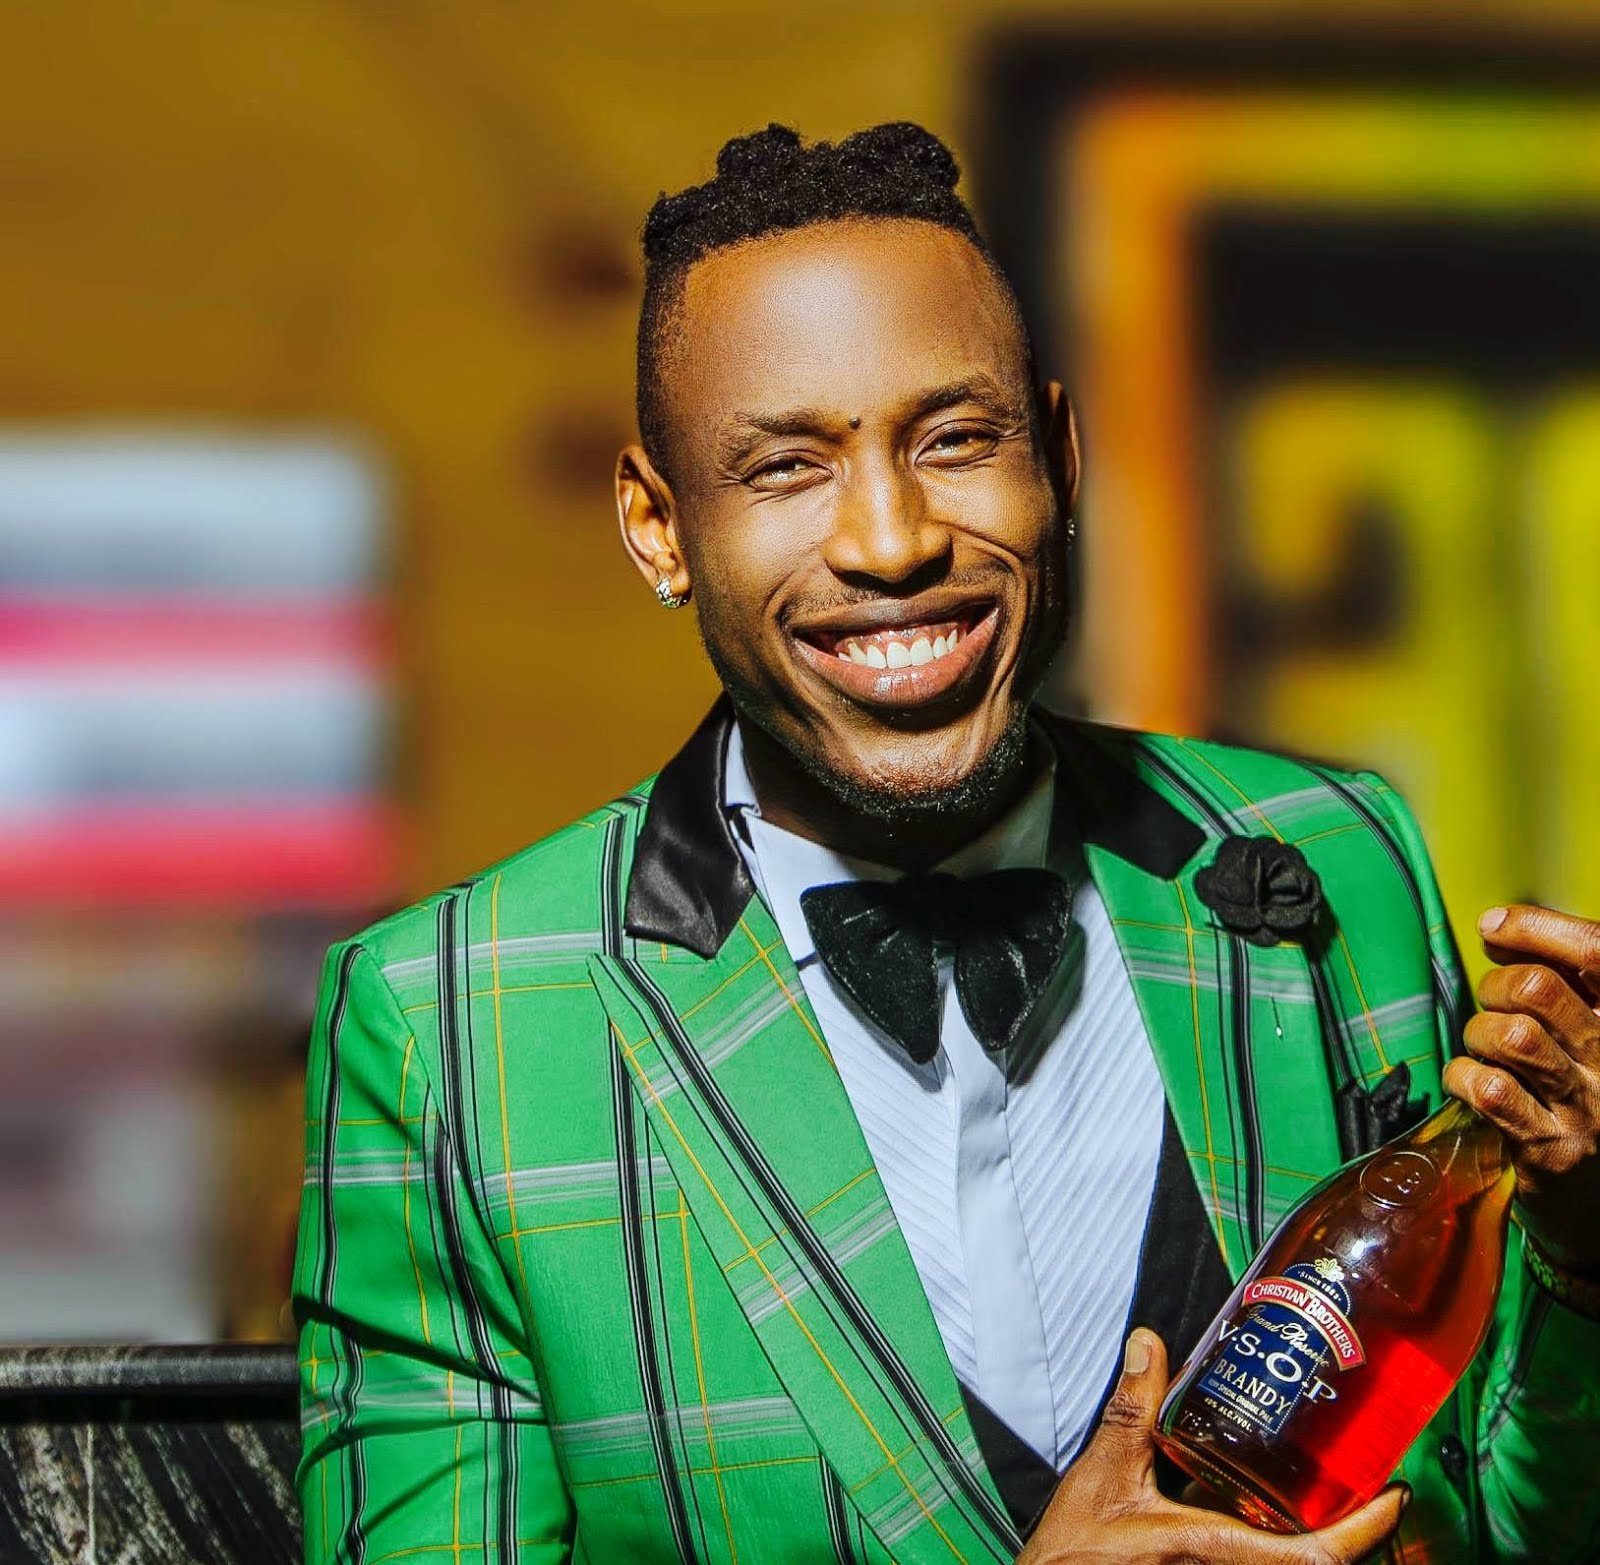 Mr 2kay becomes brand ambassador for christian brothers brandy in nigeria